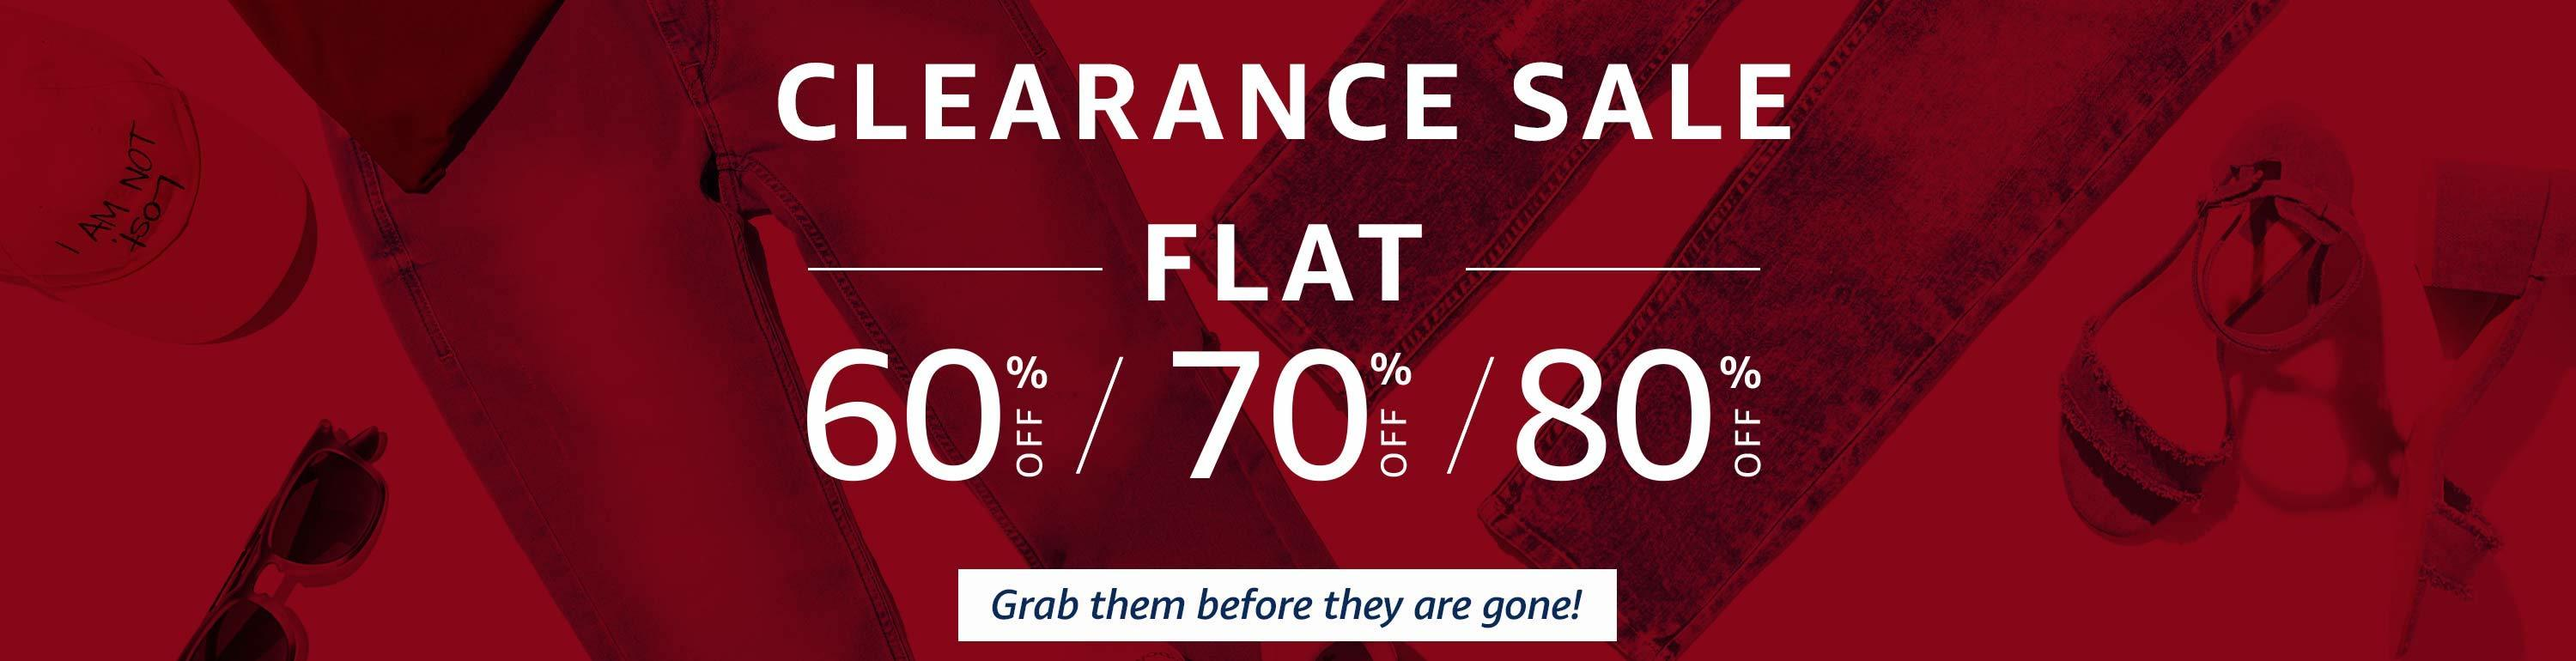 Amazon Clearance Sale